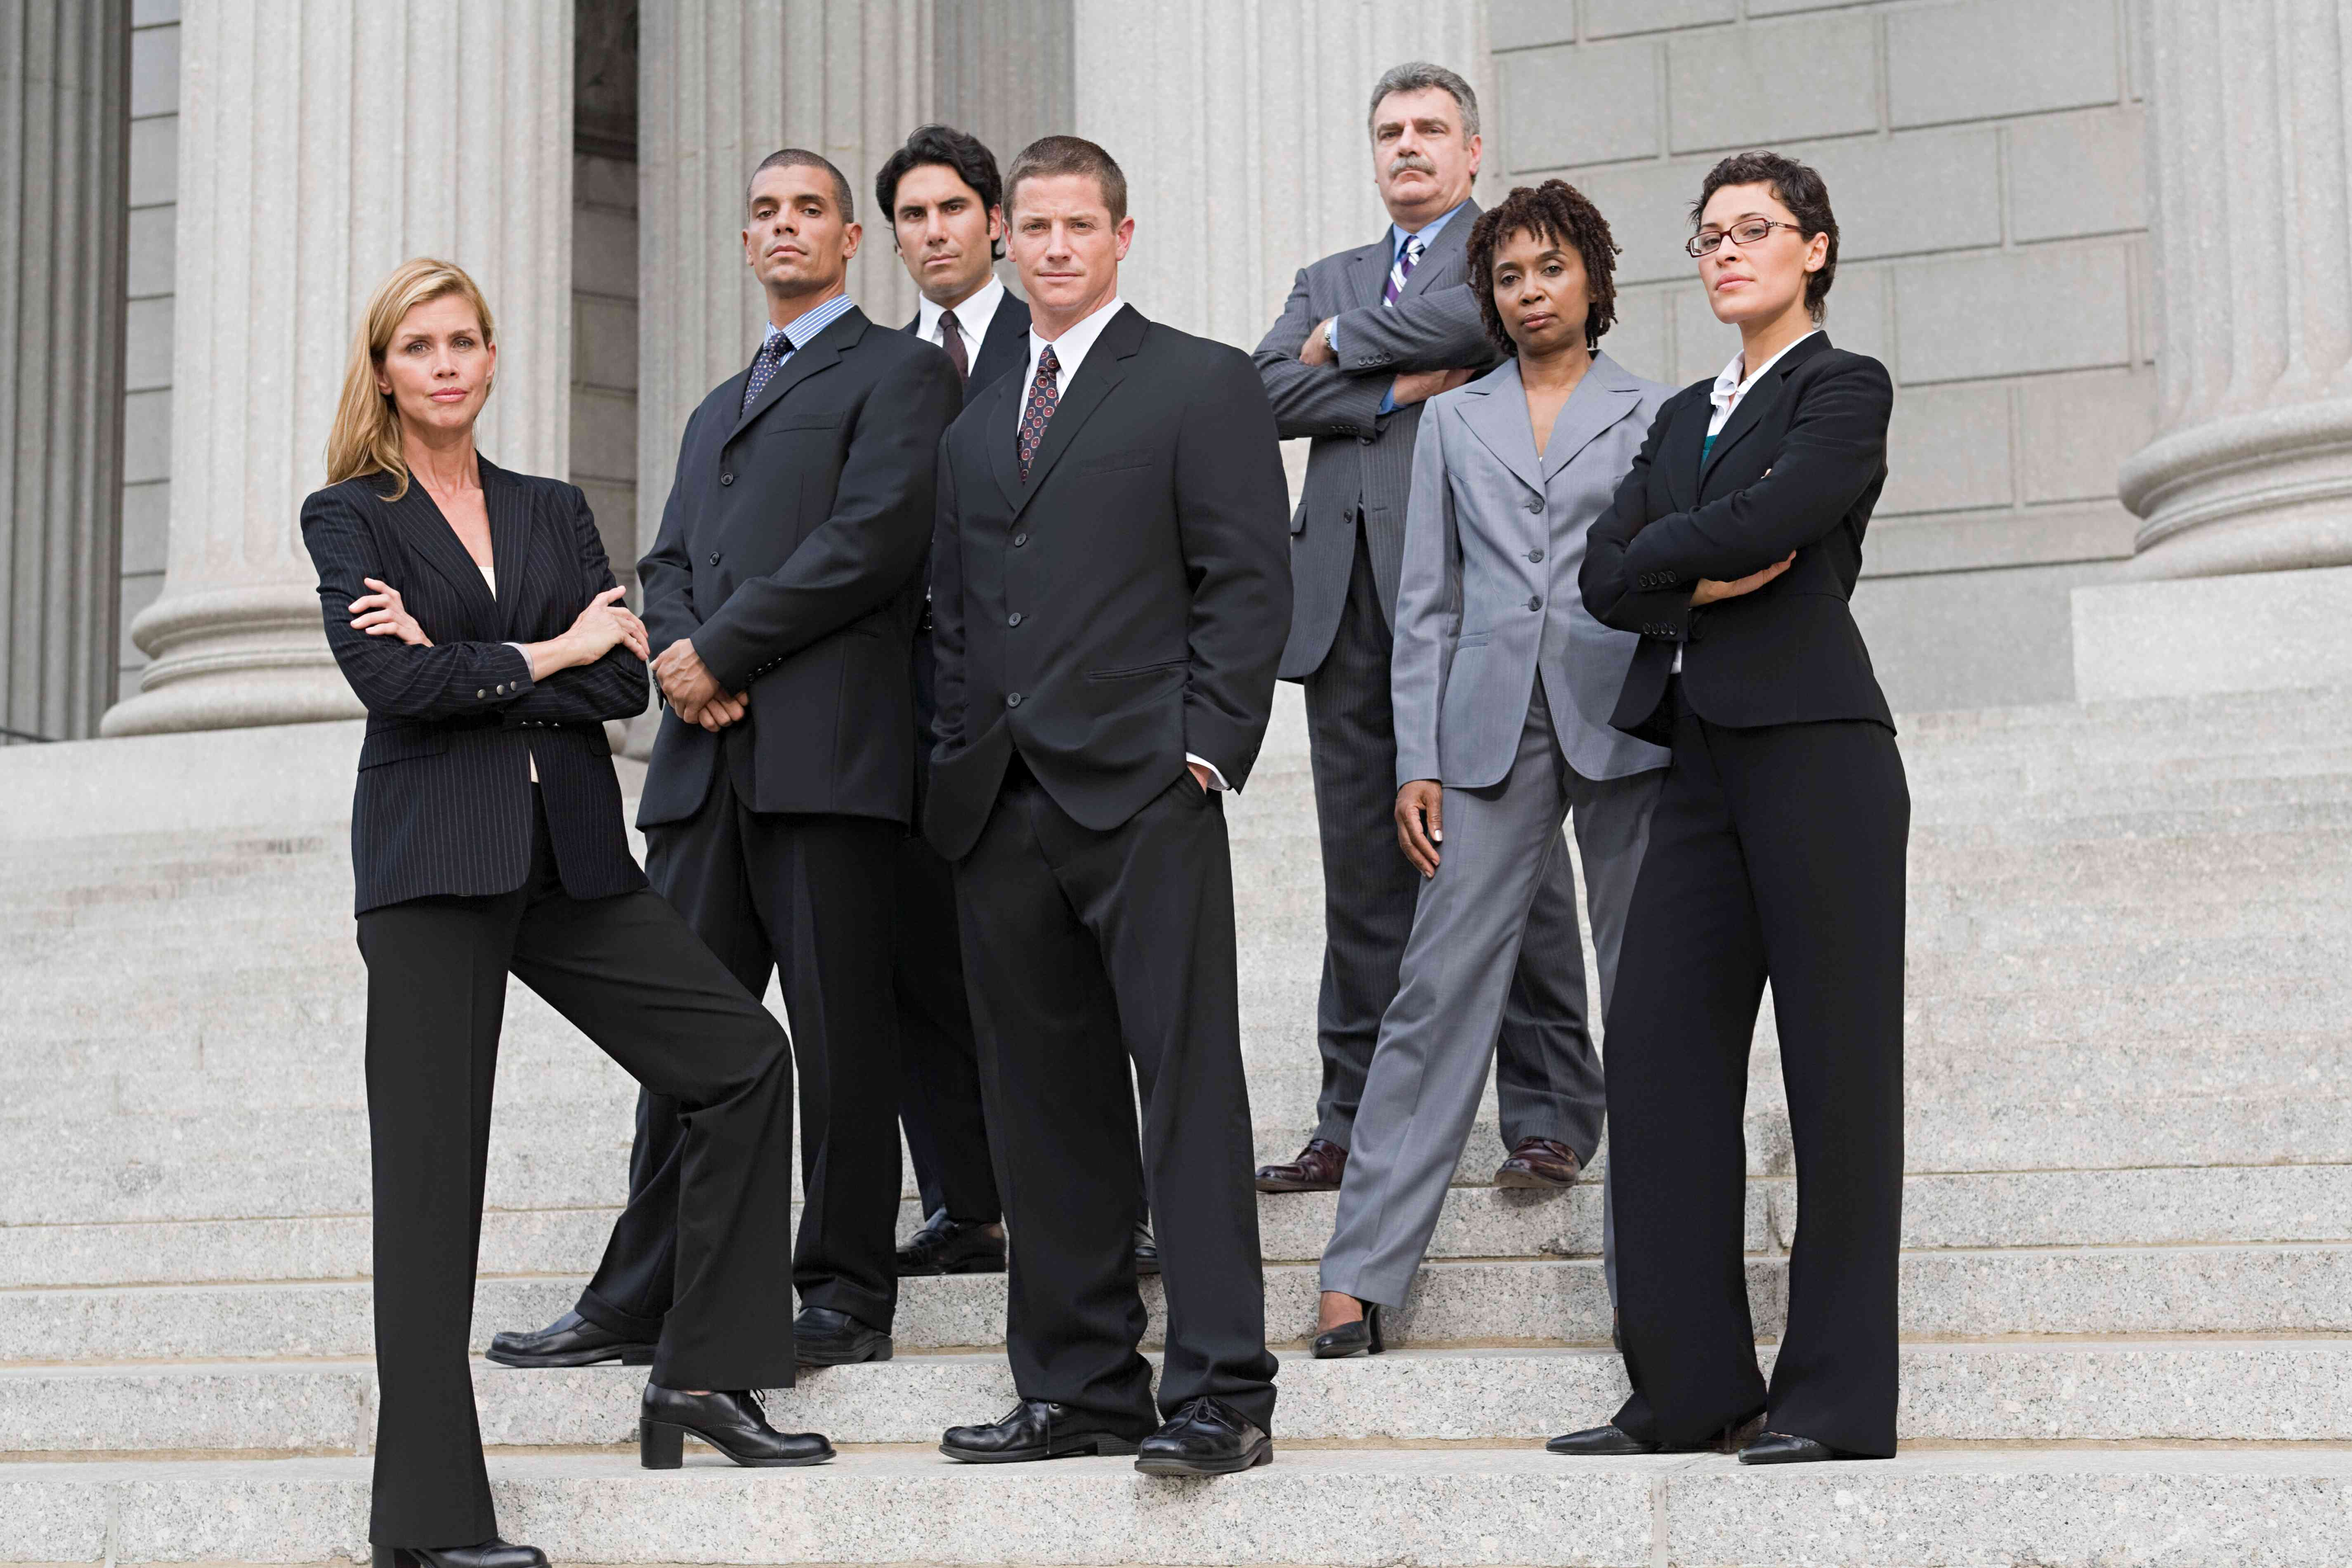 Diverse law practice areas include tax law, criminal defense, litigation and more.